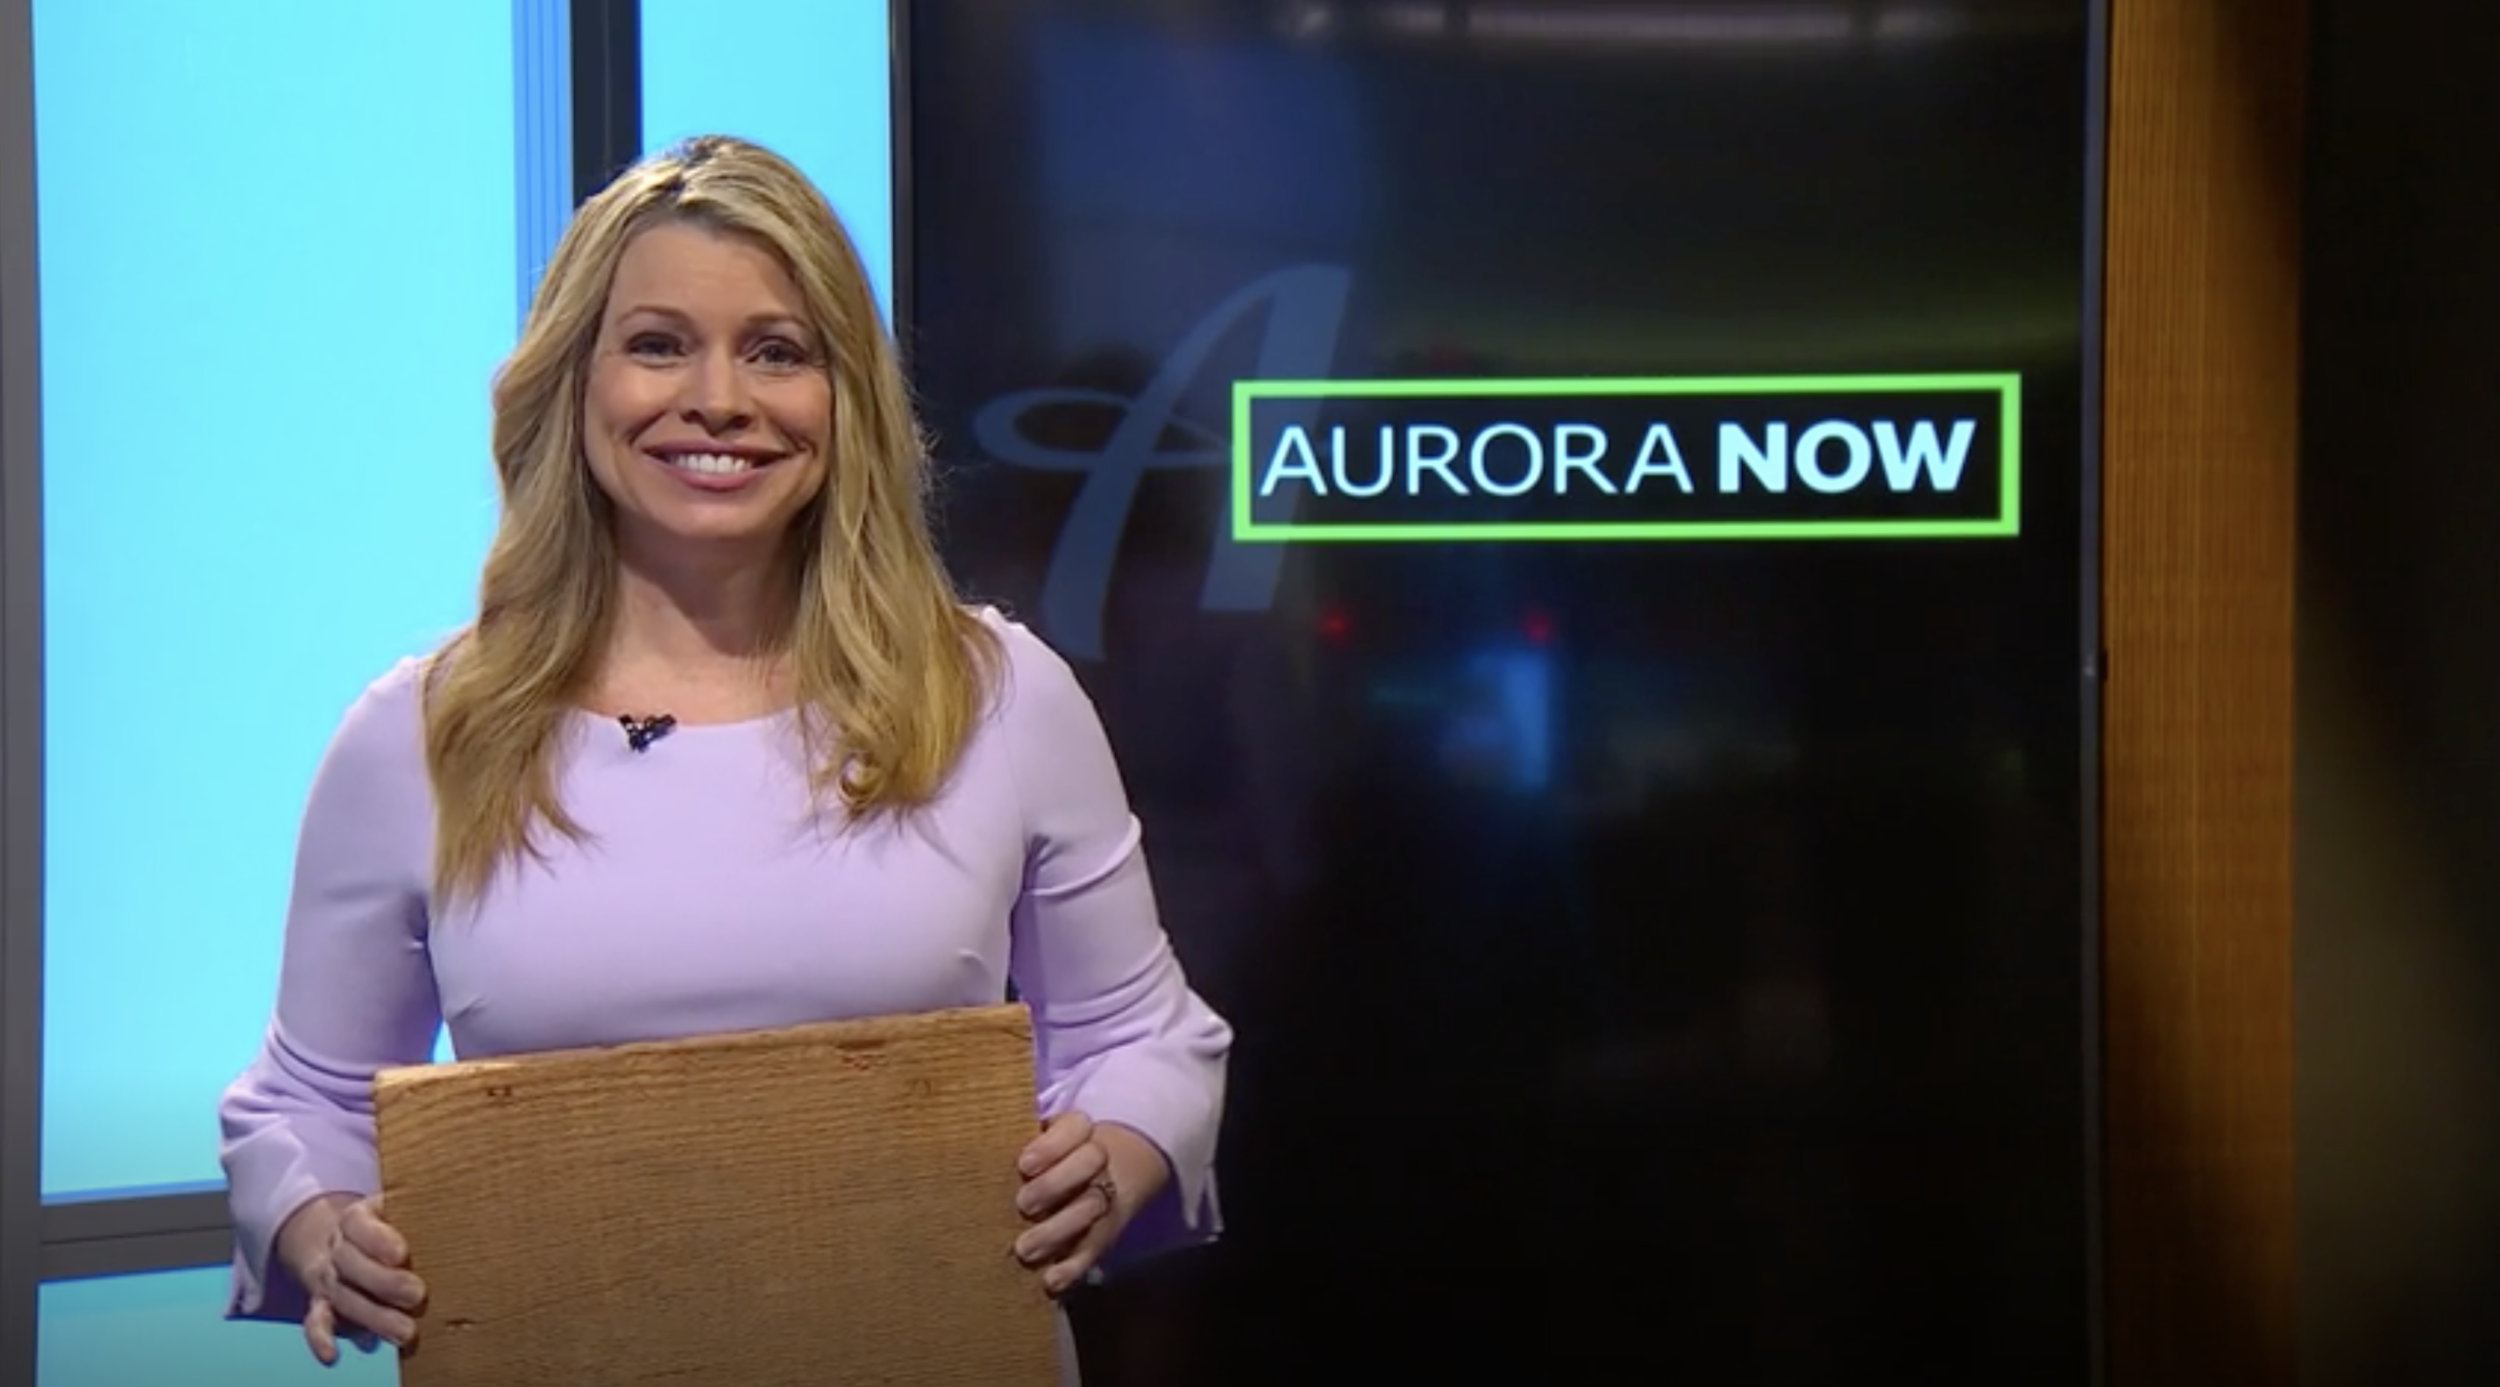 Aurora Now Feature | February 6, 2019